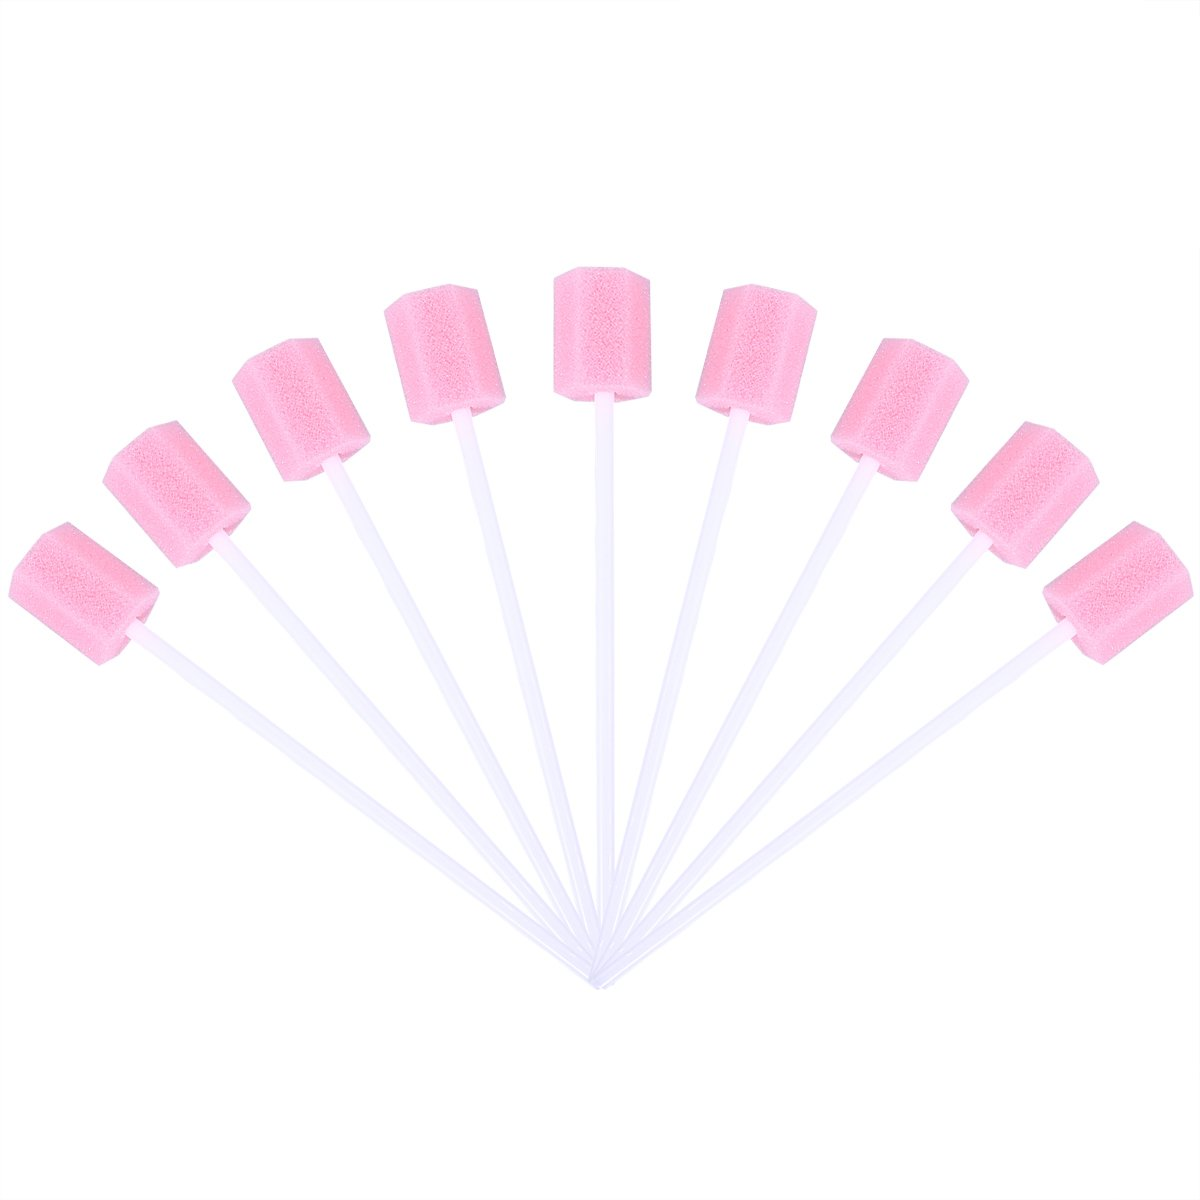 ROSENICE Mouth Sponges Dental Swabs 100pcs Disposable Oral Care Sponge Swab Tooth Cleaning Mouth Swabs (Pink)